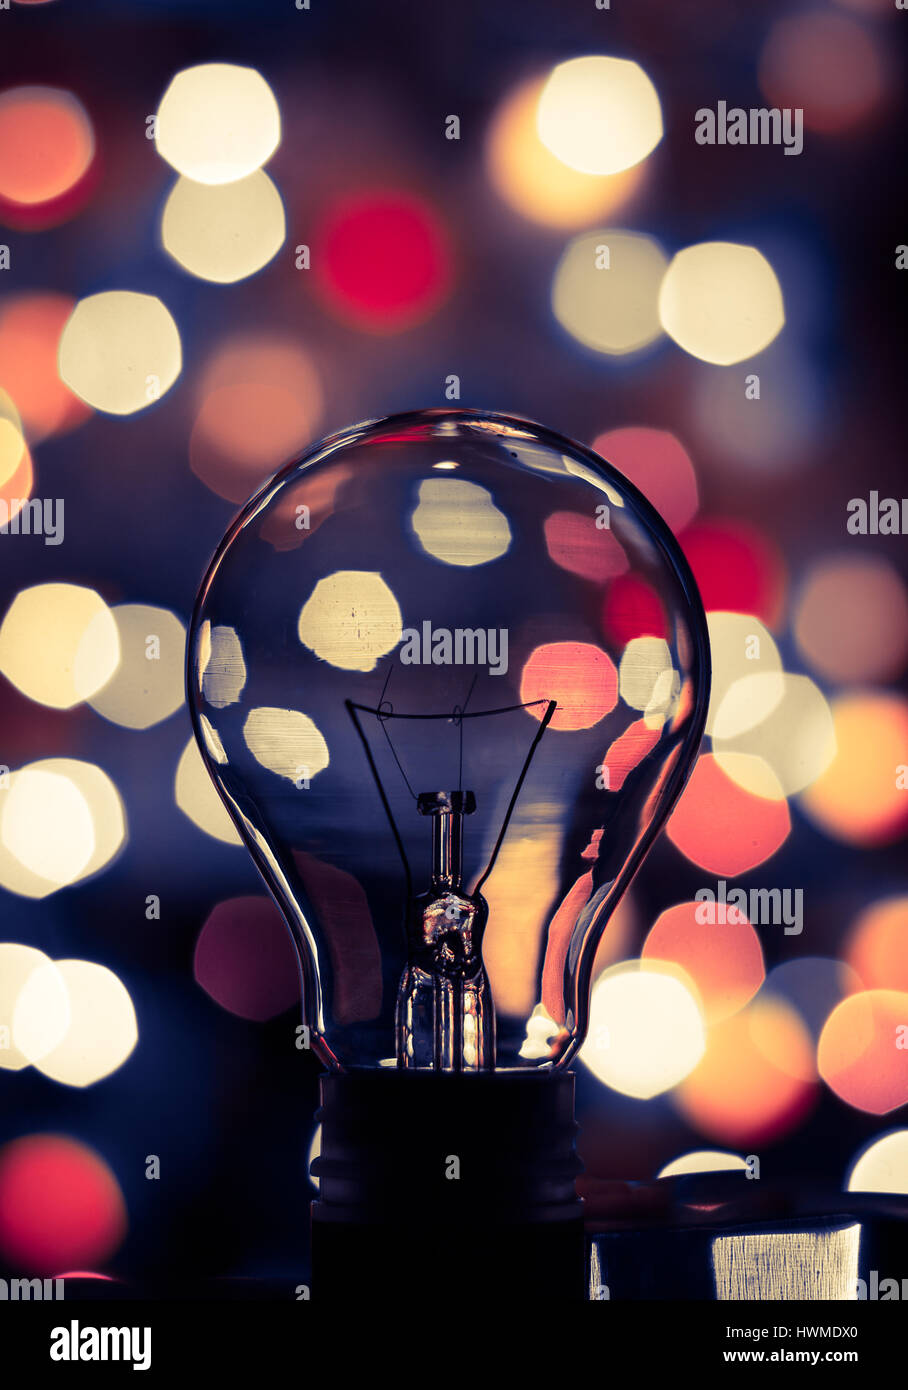 Light bulb bokeh. Abstract photo of a light bulb with colorful bokeh background. Stock Photo